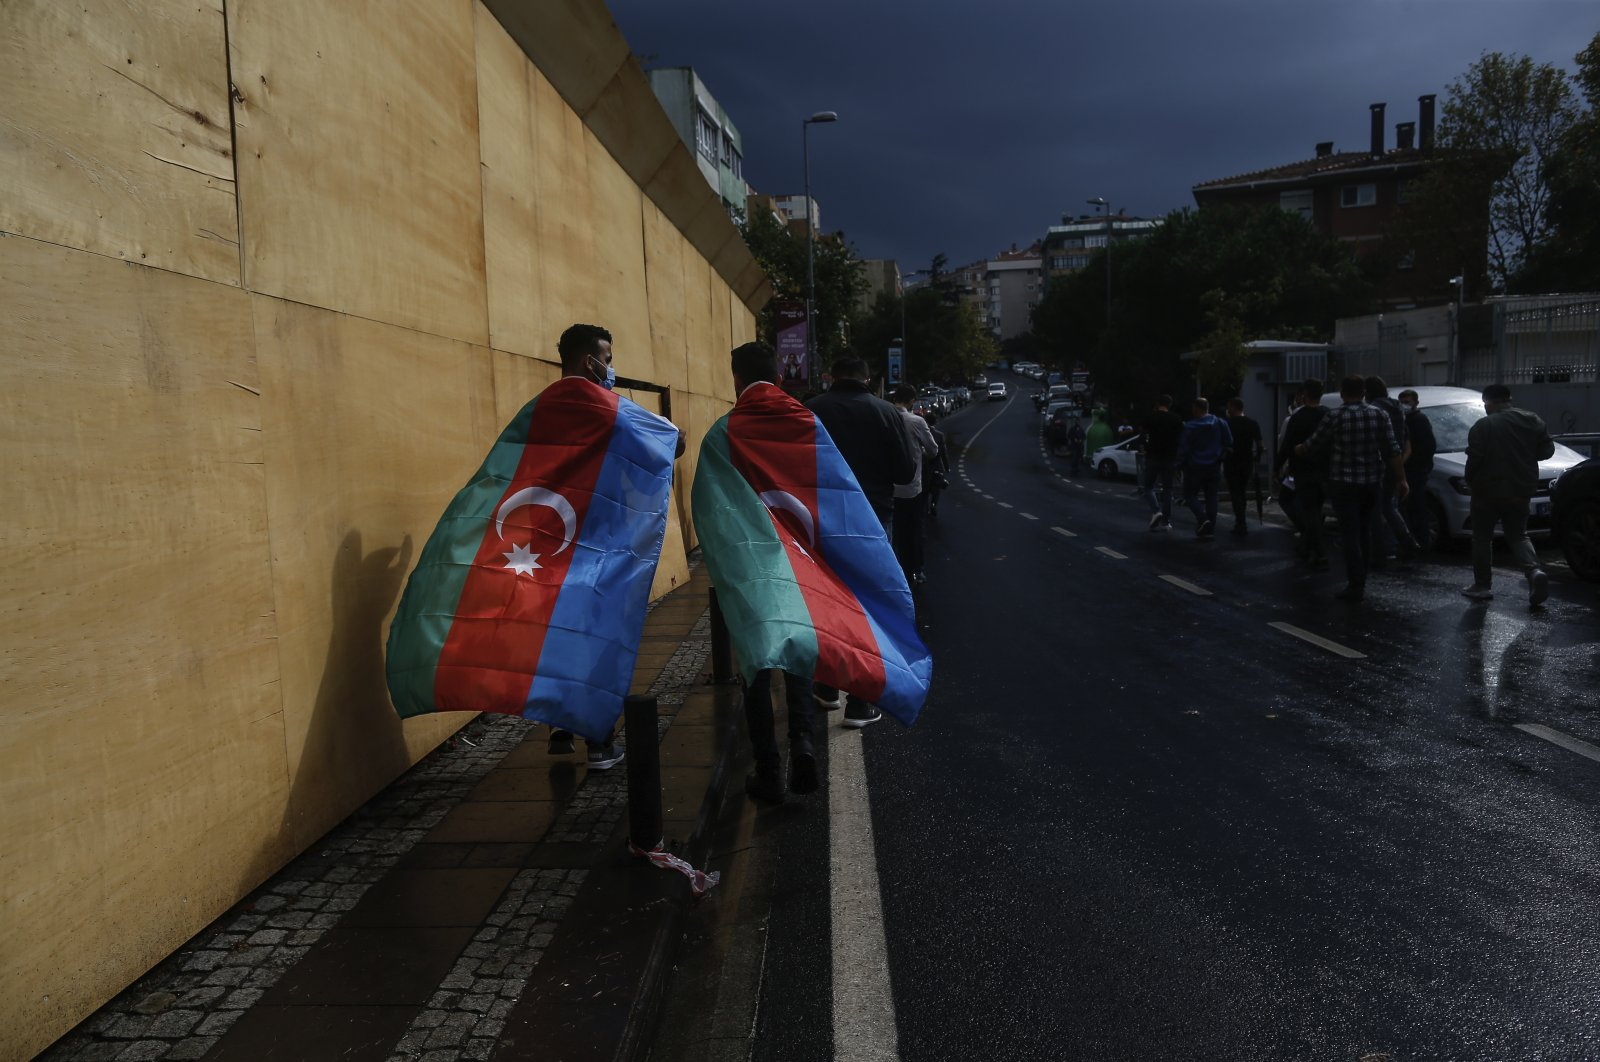 Two Turkish men, draped in Azerbaijani flags, walk away following a protest supporting Azerbaijan against Armenia's aggression, in front of the Azerbaijani Consulate in Istanbul, Turkey, Sept. 29, 2020. (AP Photo)